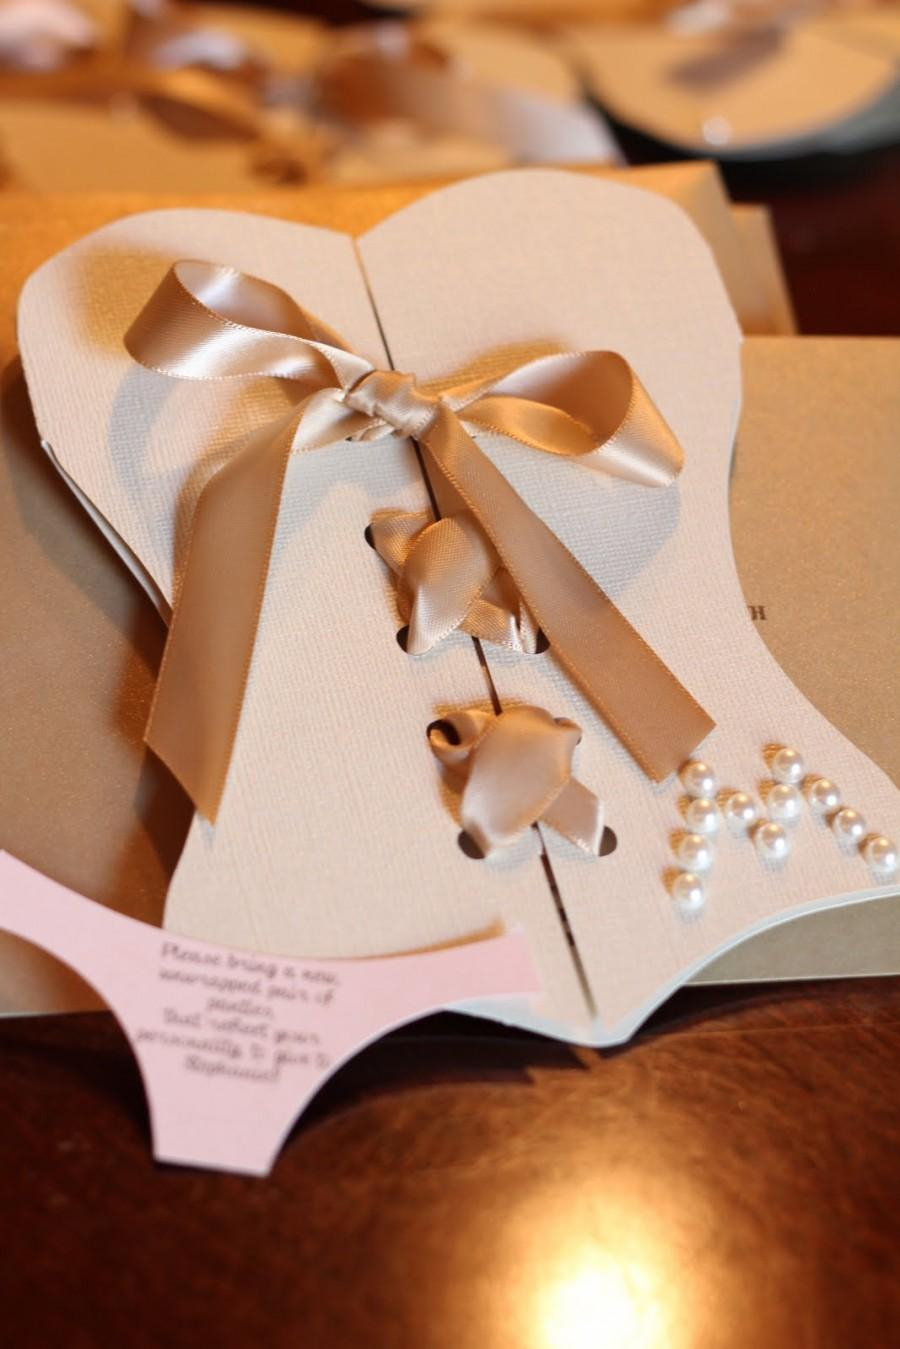 10 Most Recommended Diy Bridal Shower Invitations Ideas diy lingerie bachelorette party invitations e299a5 unique and creative